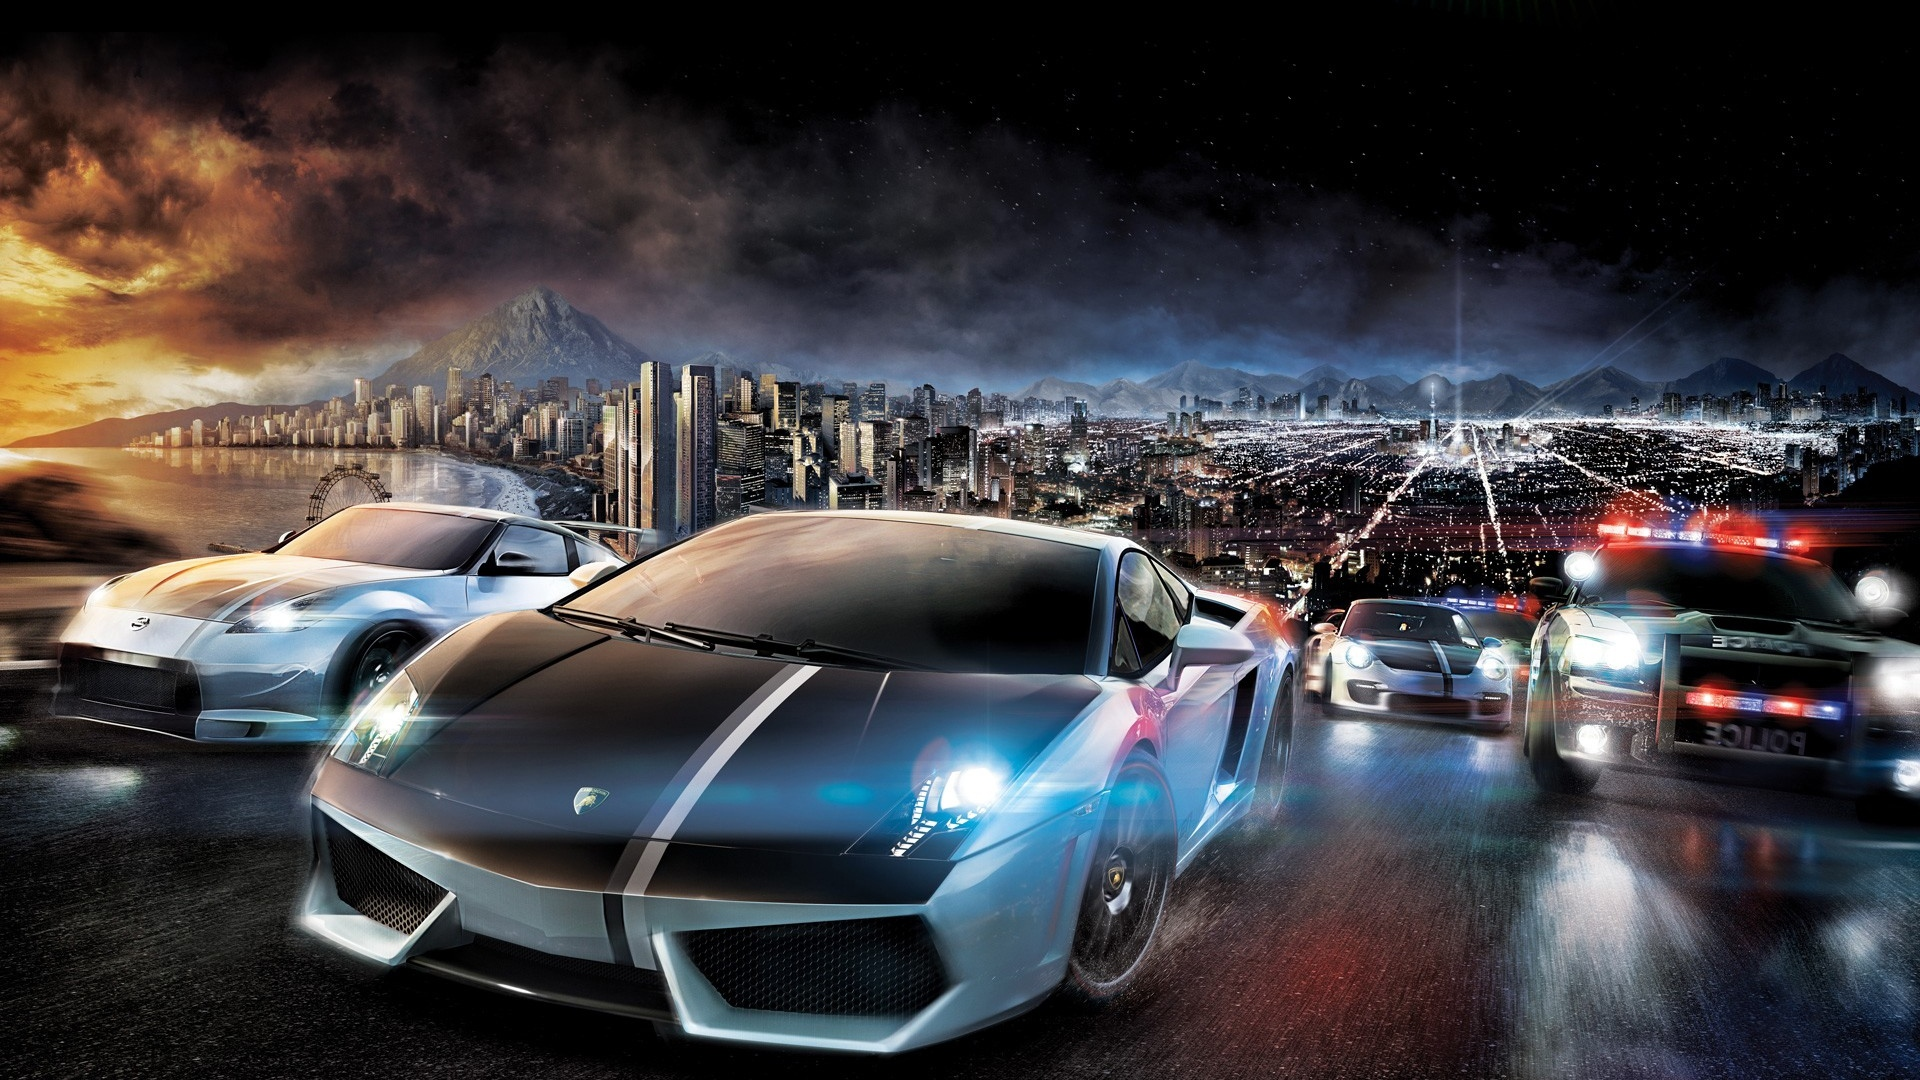 download wallpaper 1920x1080 nfs, need for speed, car, crash, police